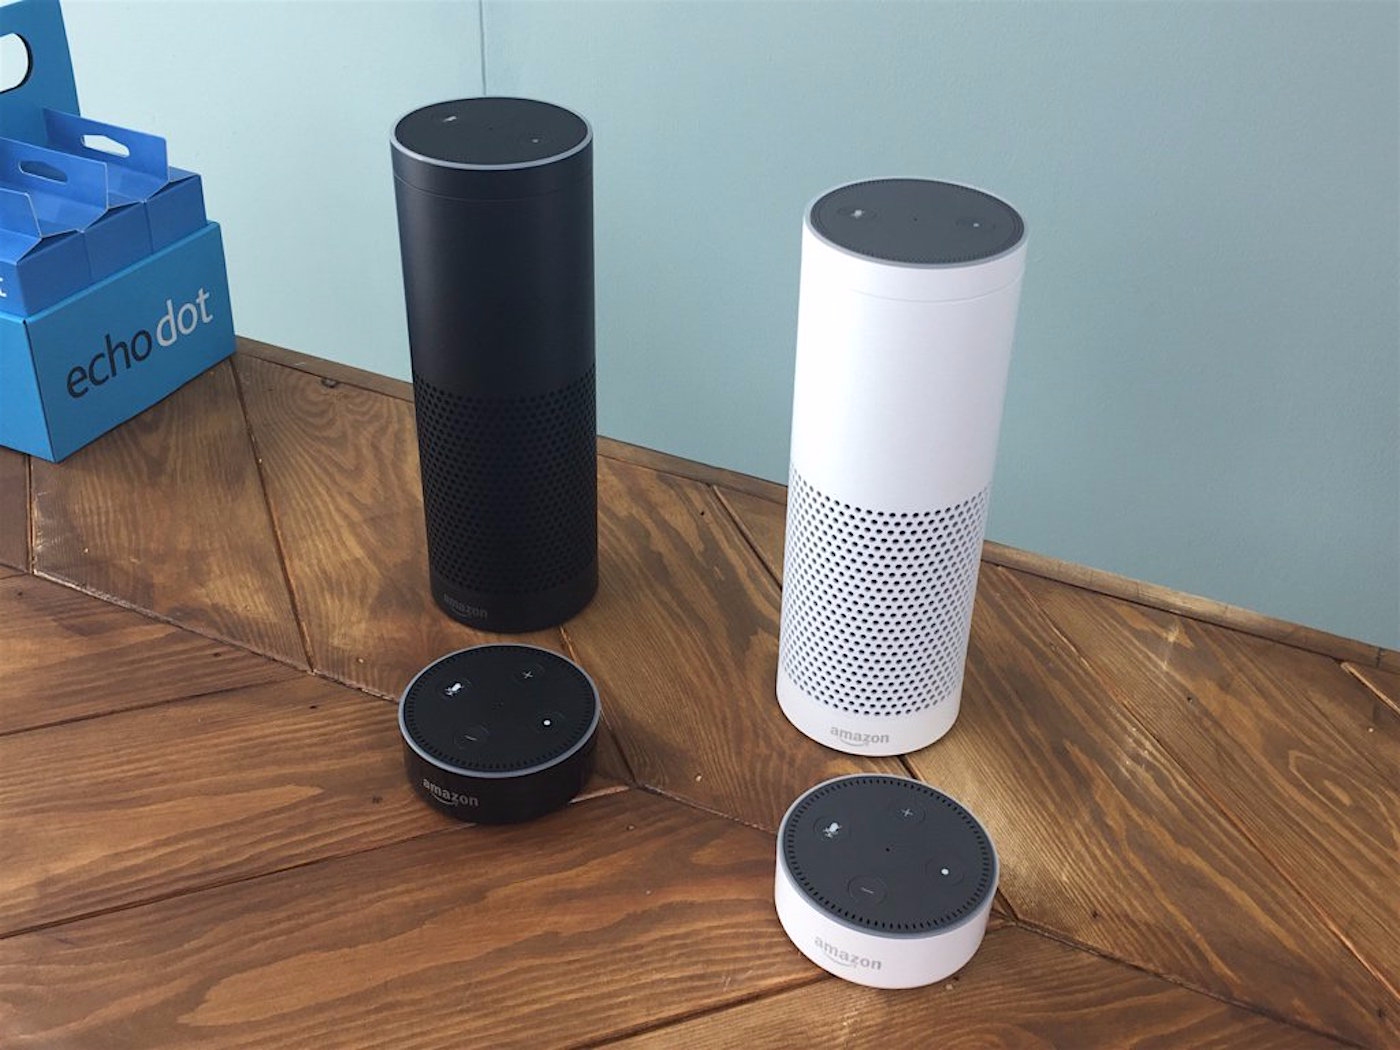 HOT TUB MURDER & THE AMAZON ECHO, will play out in Arkansas trial.  Cst2jgqwaaagdmk